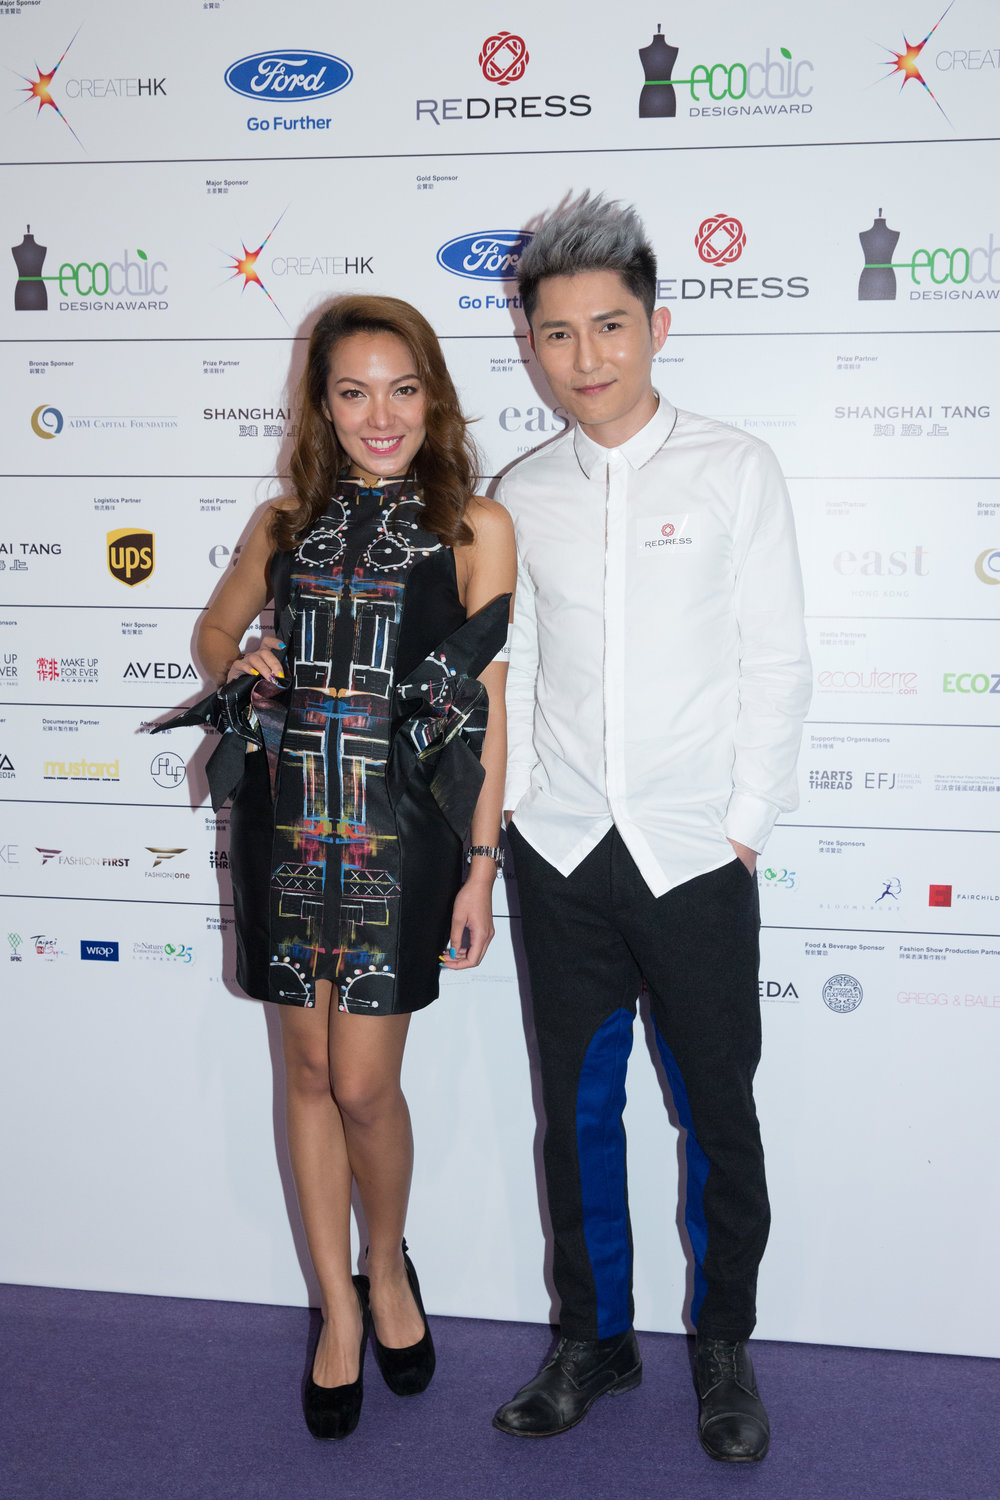 Hong Kong entertainers Sarki Choy and Ryan Lau wear Angus Tsui and Wan & Wong Fashion to attend the Redress Design Award 2015/16 Grand Final Show